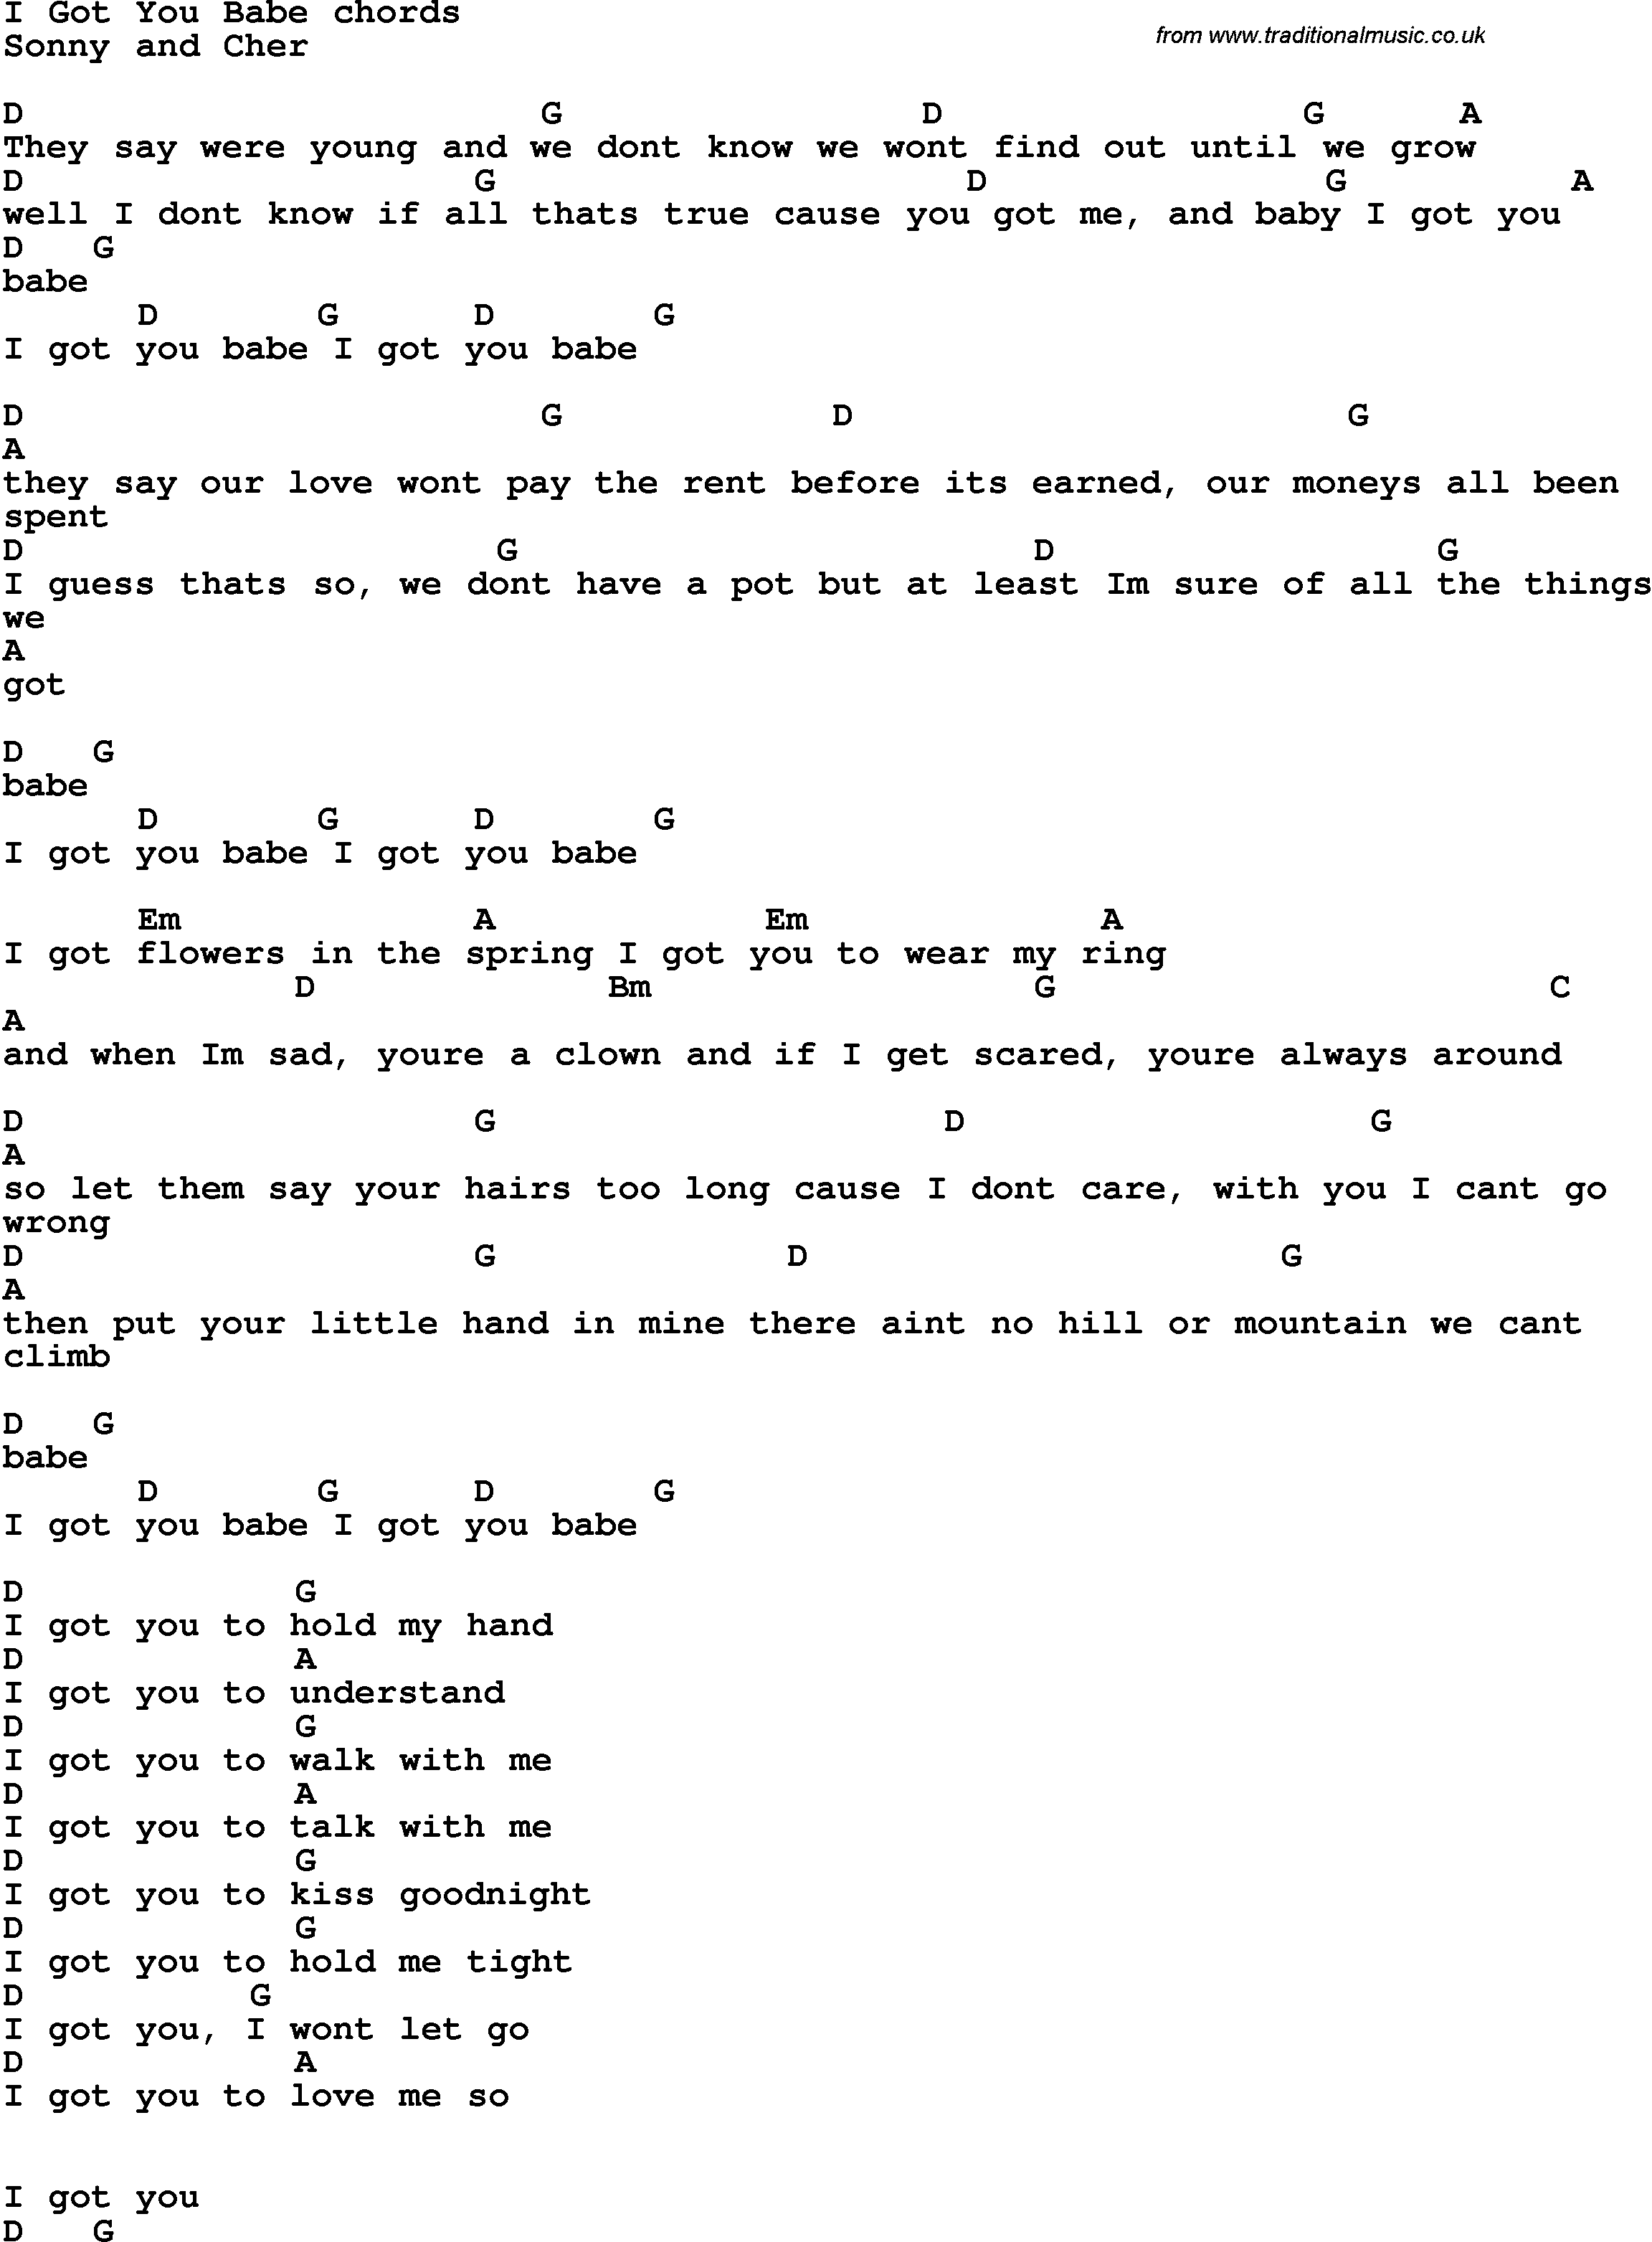 Song Lyrics With Guitar Chords For I Got You Babe Guitarchords